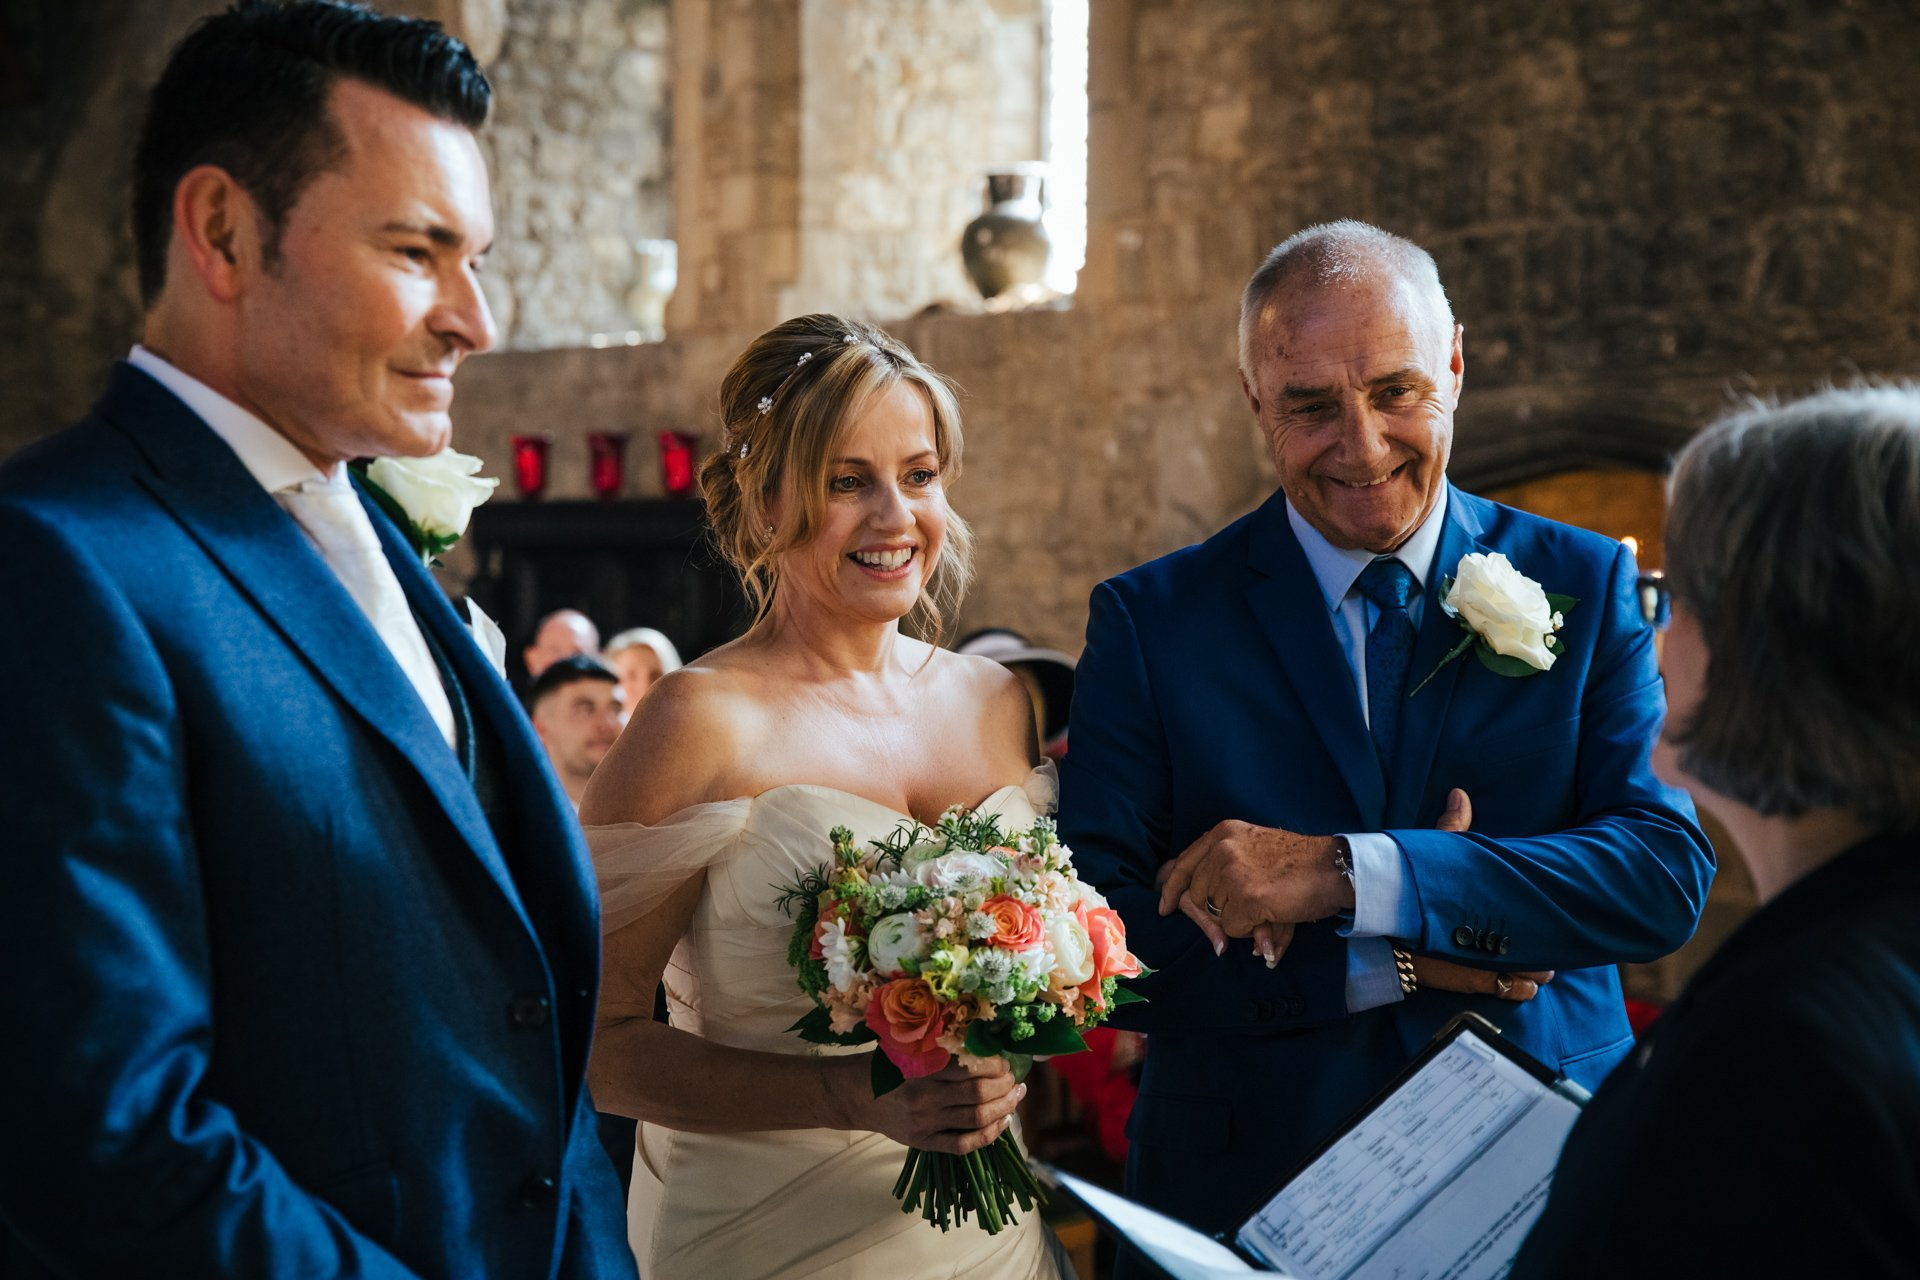 Brides father holding the hand of his daughter next to her groom during ceremony